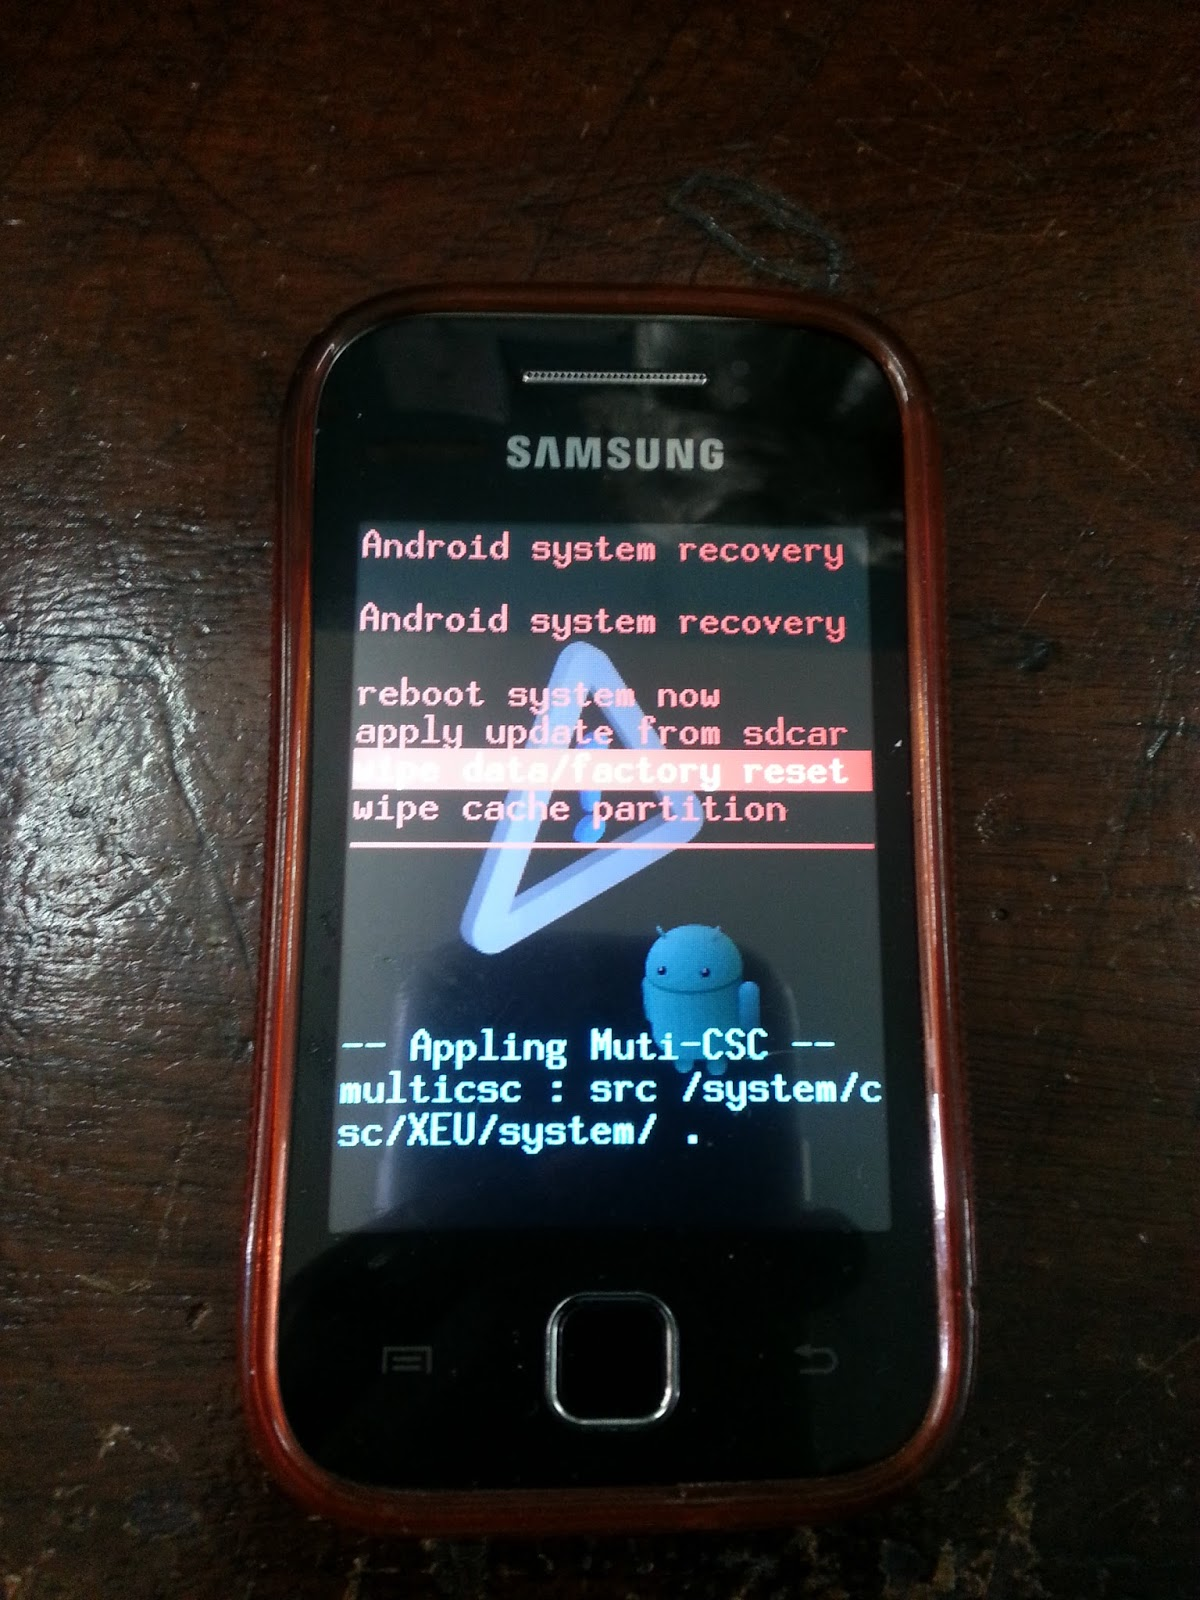 DIY-Rickytlc1985 : How to unlock your Samsung Galaxy after